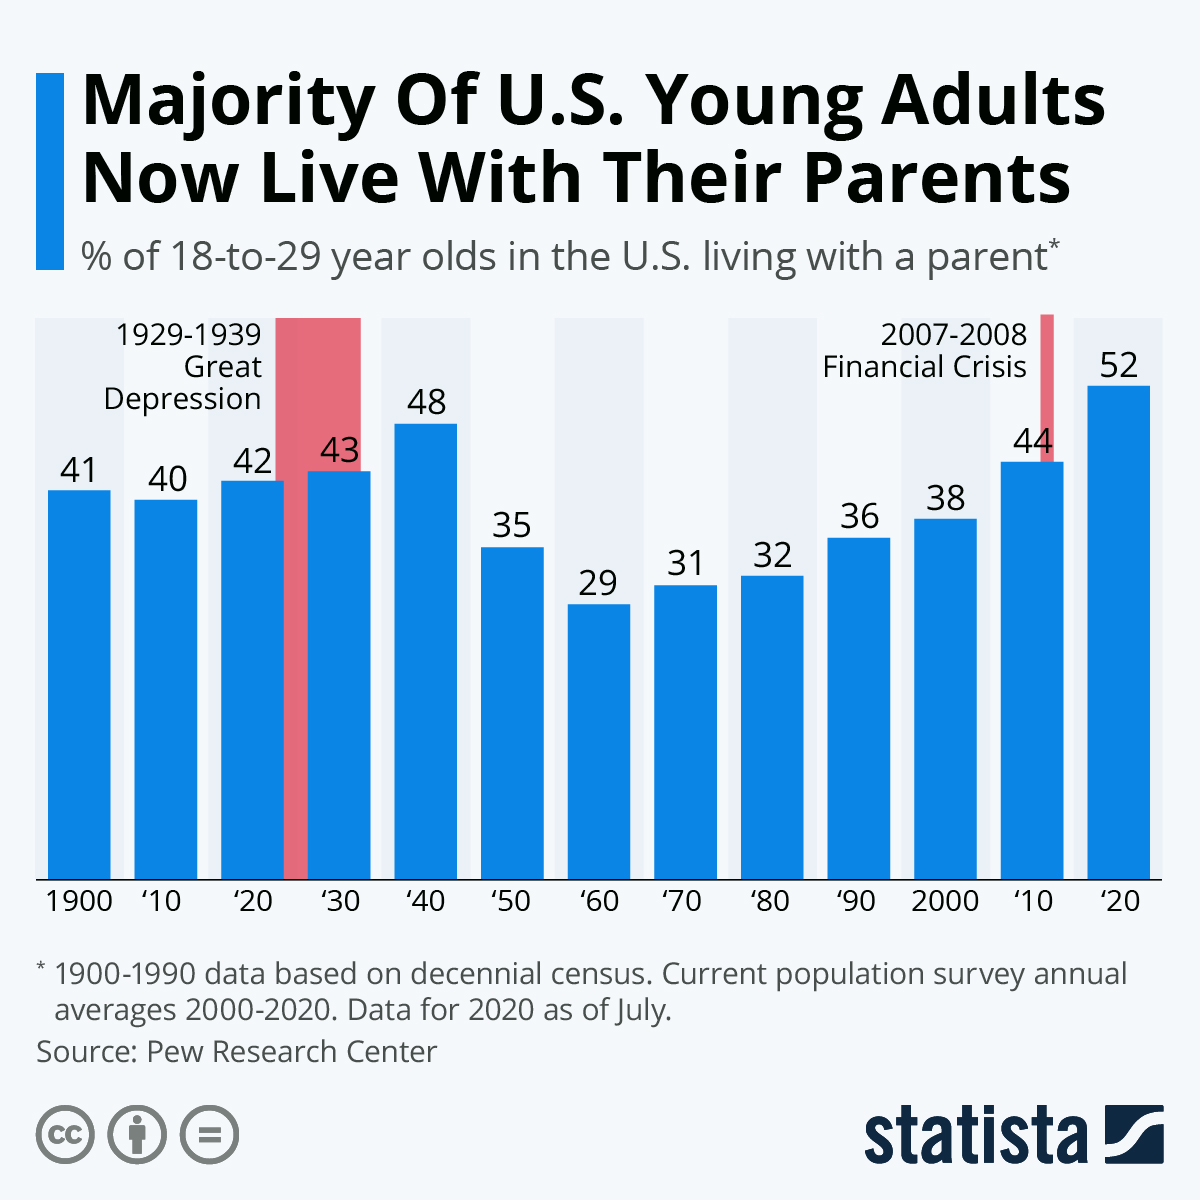 Majority Of U.S. Young Adults Now Live With Their Parents